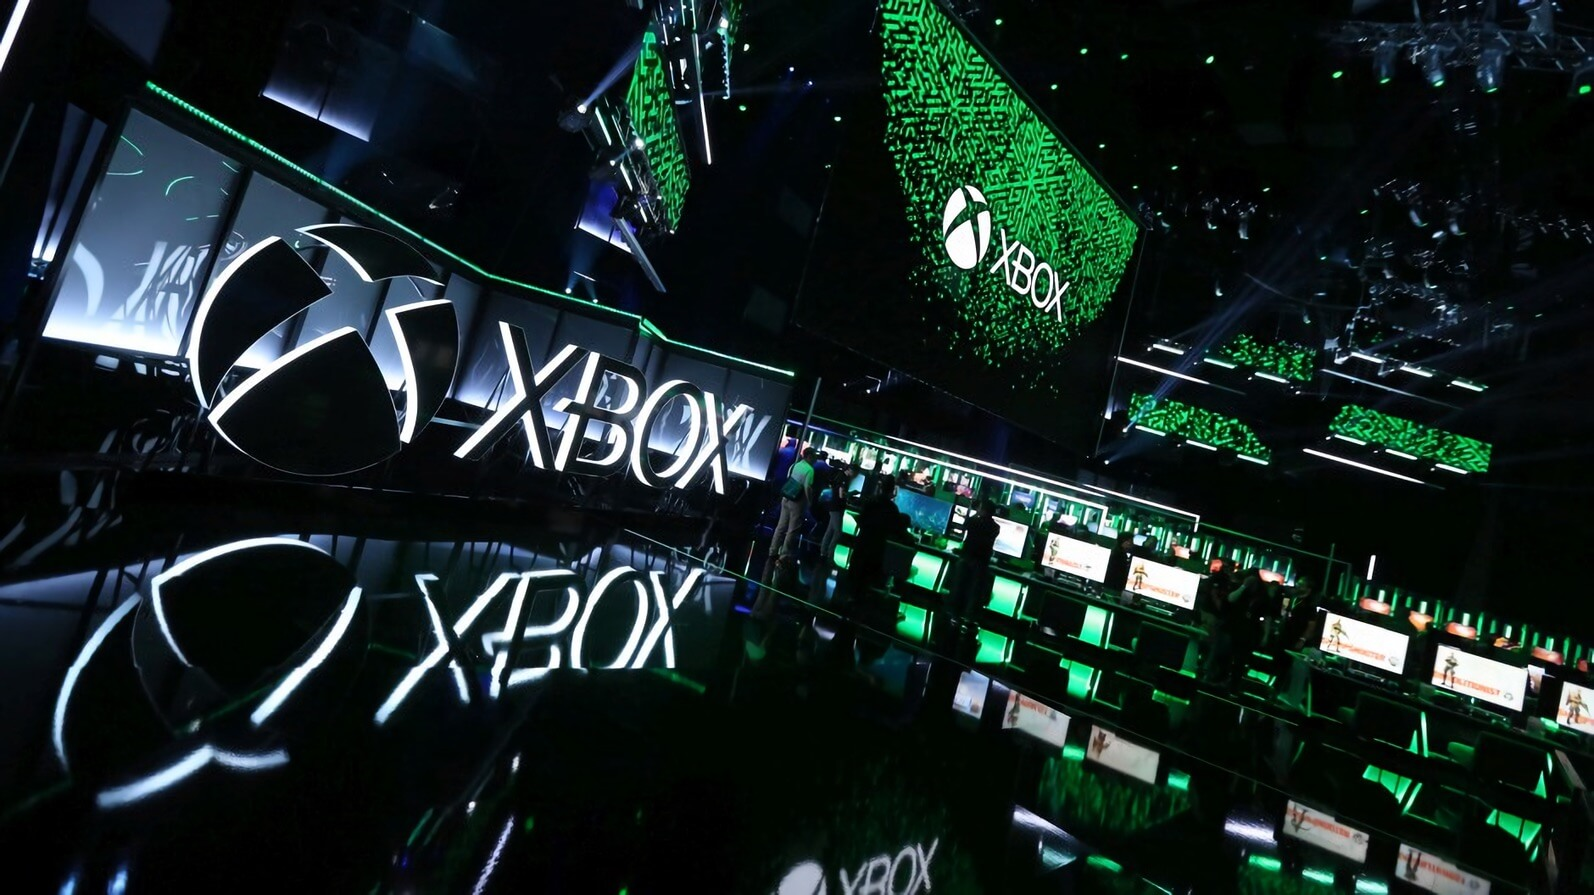 E3 2019: Microsoft Officially Announces Next-Gen Xbox And It's Powerful